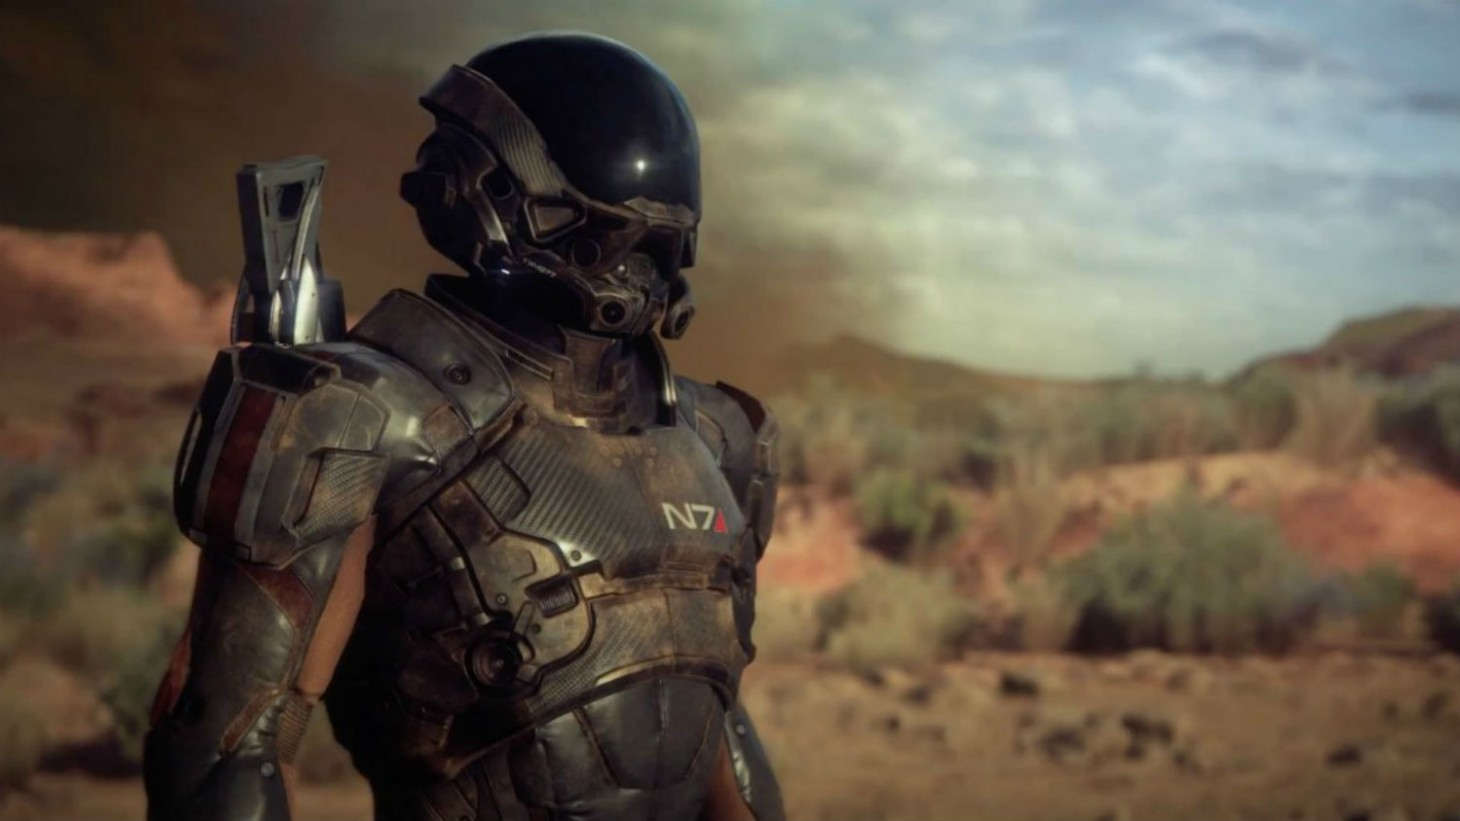 Mass Effectandromeda Happy N7 Day Mass Effect Andromeda Is Now Enhanced For Xbox One X